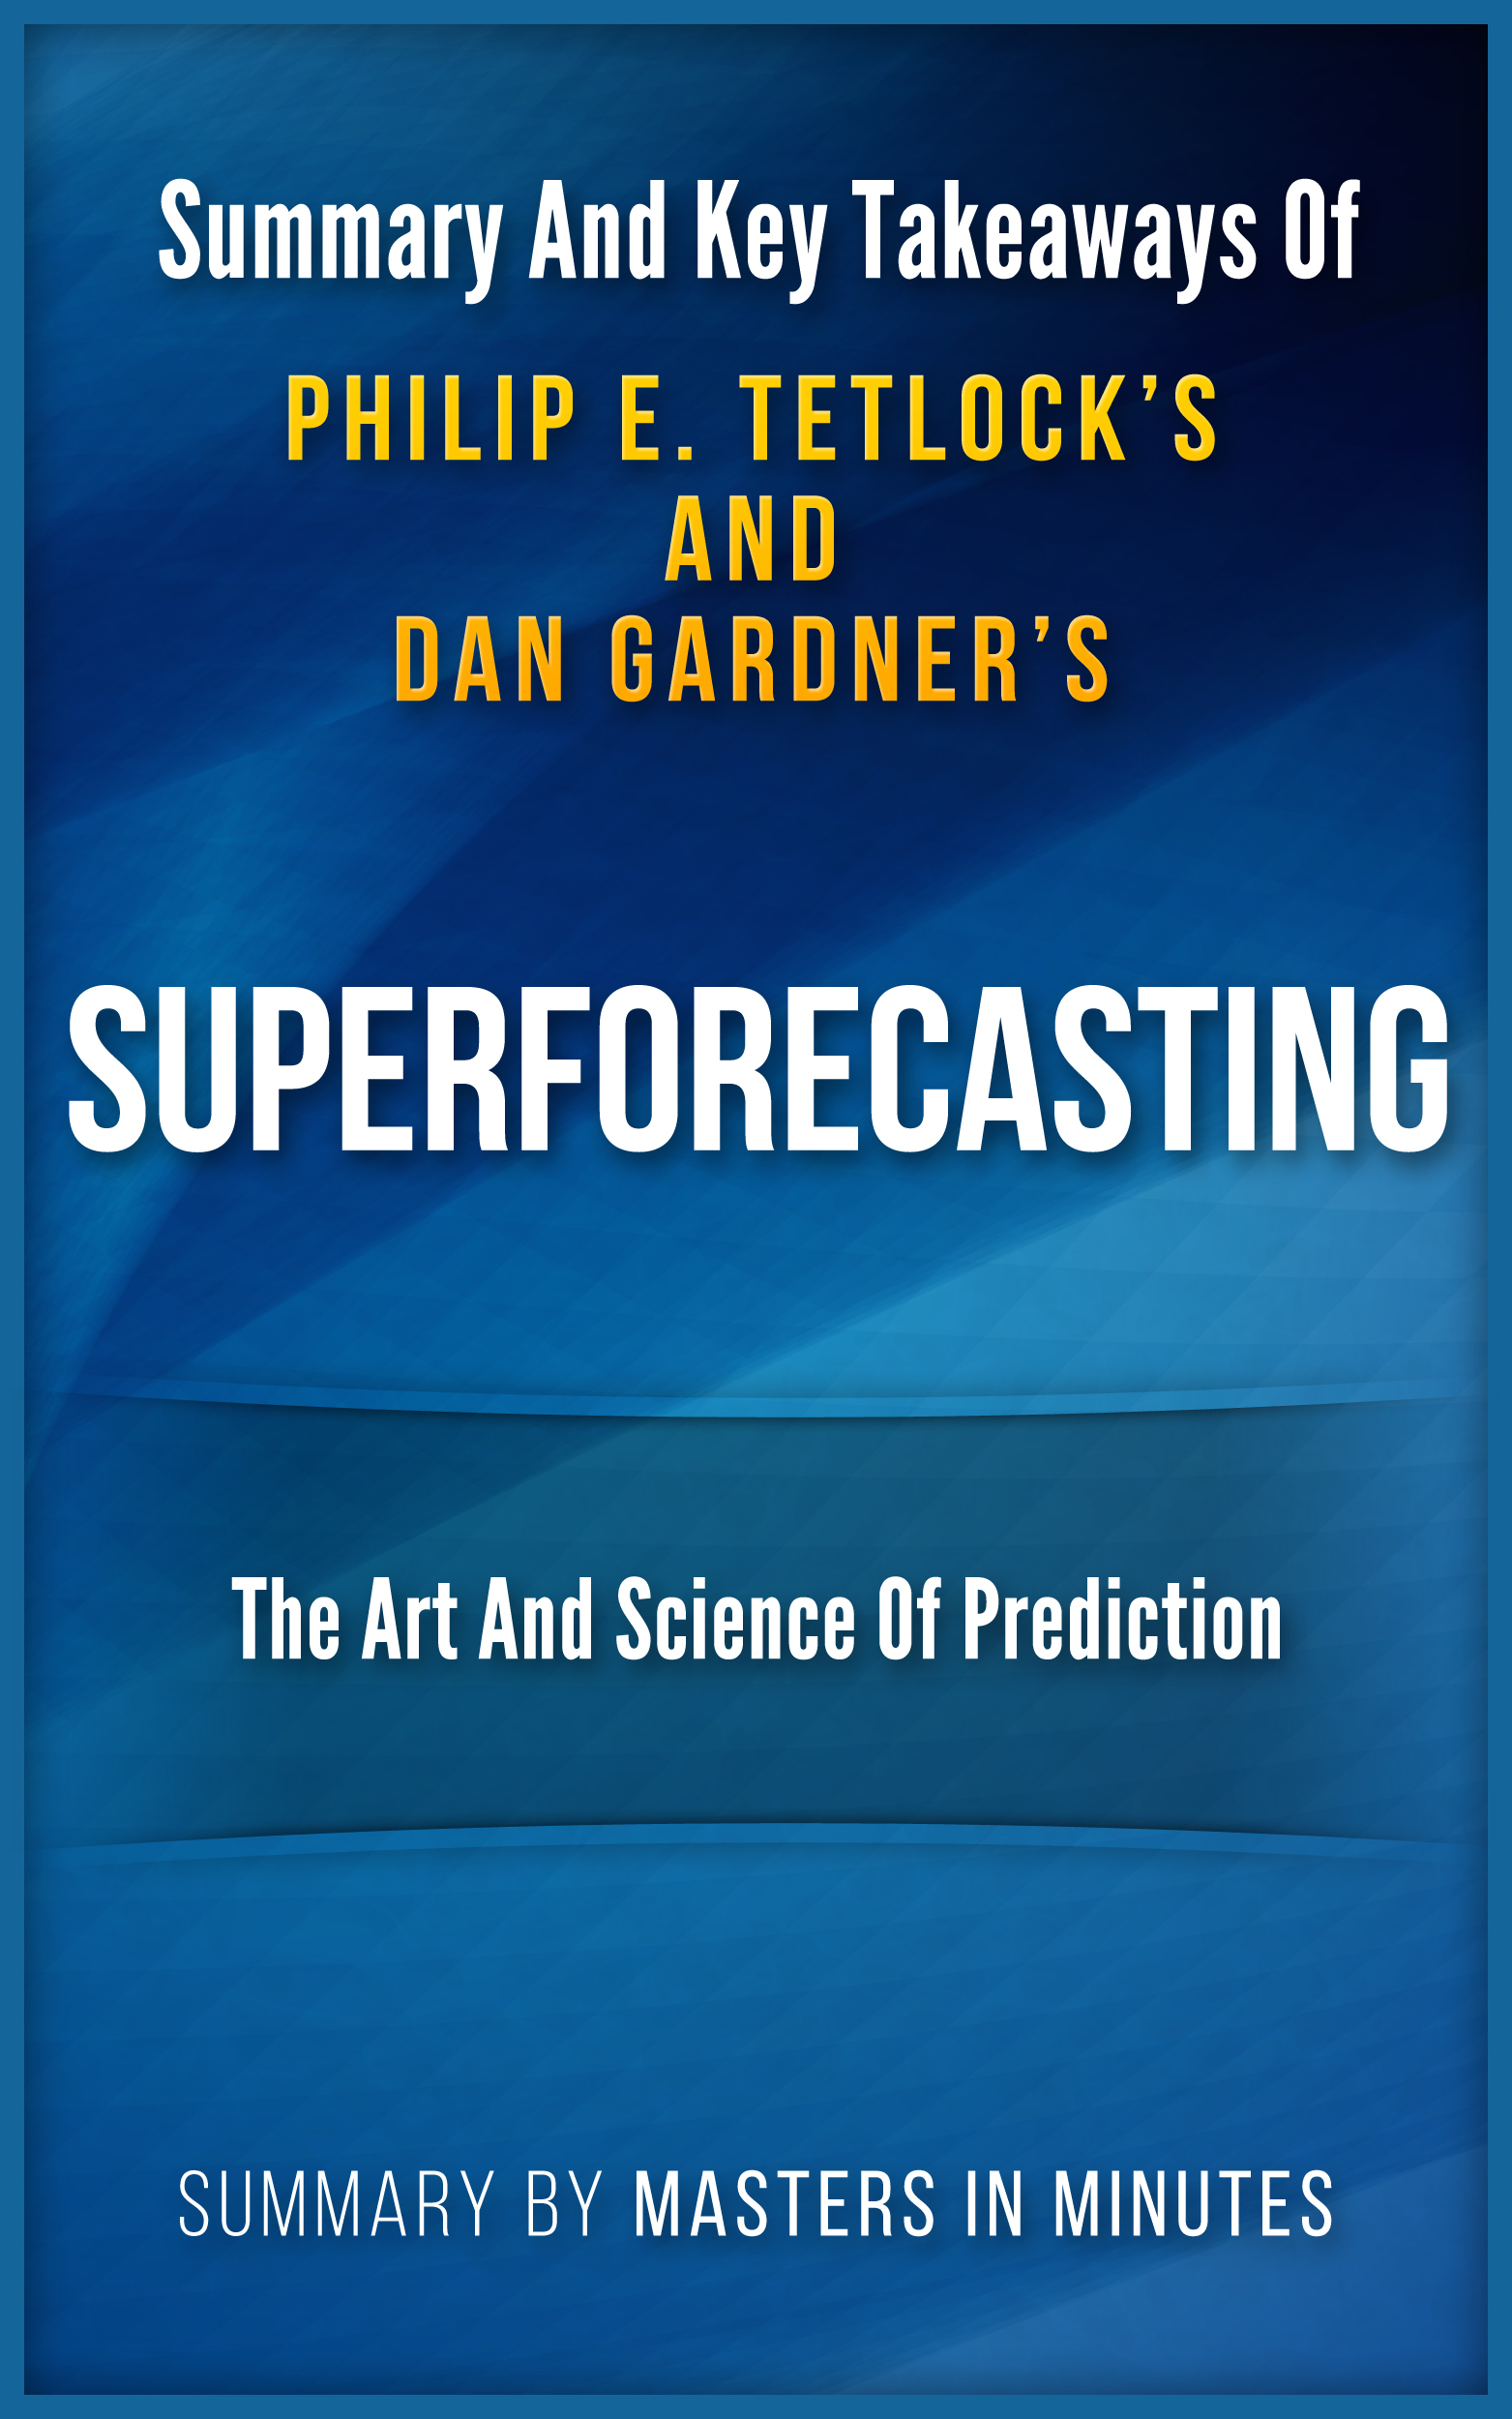 Superforecasting: The Art and Science of Prediction | Summary & Key Takeaways